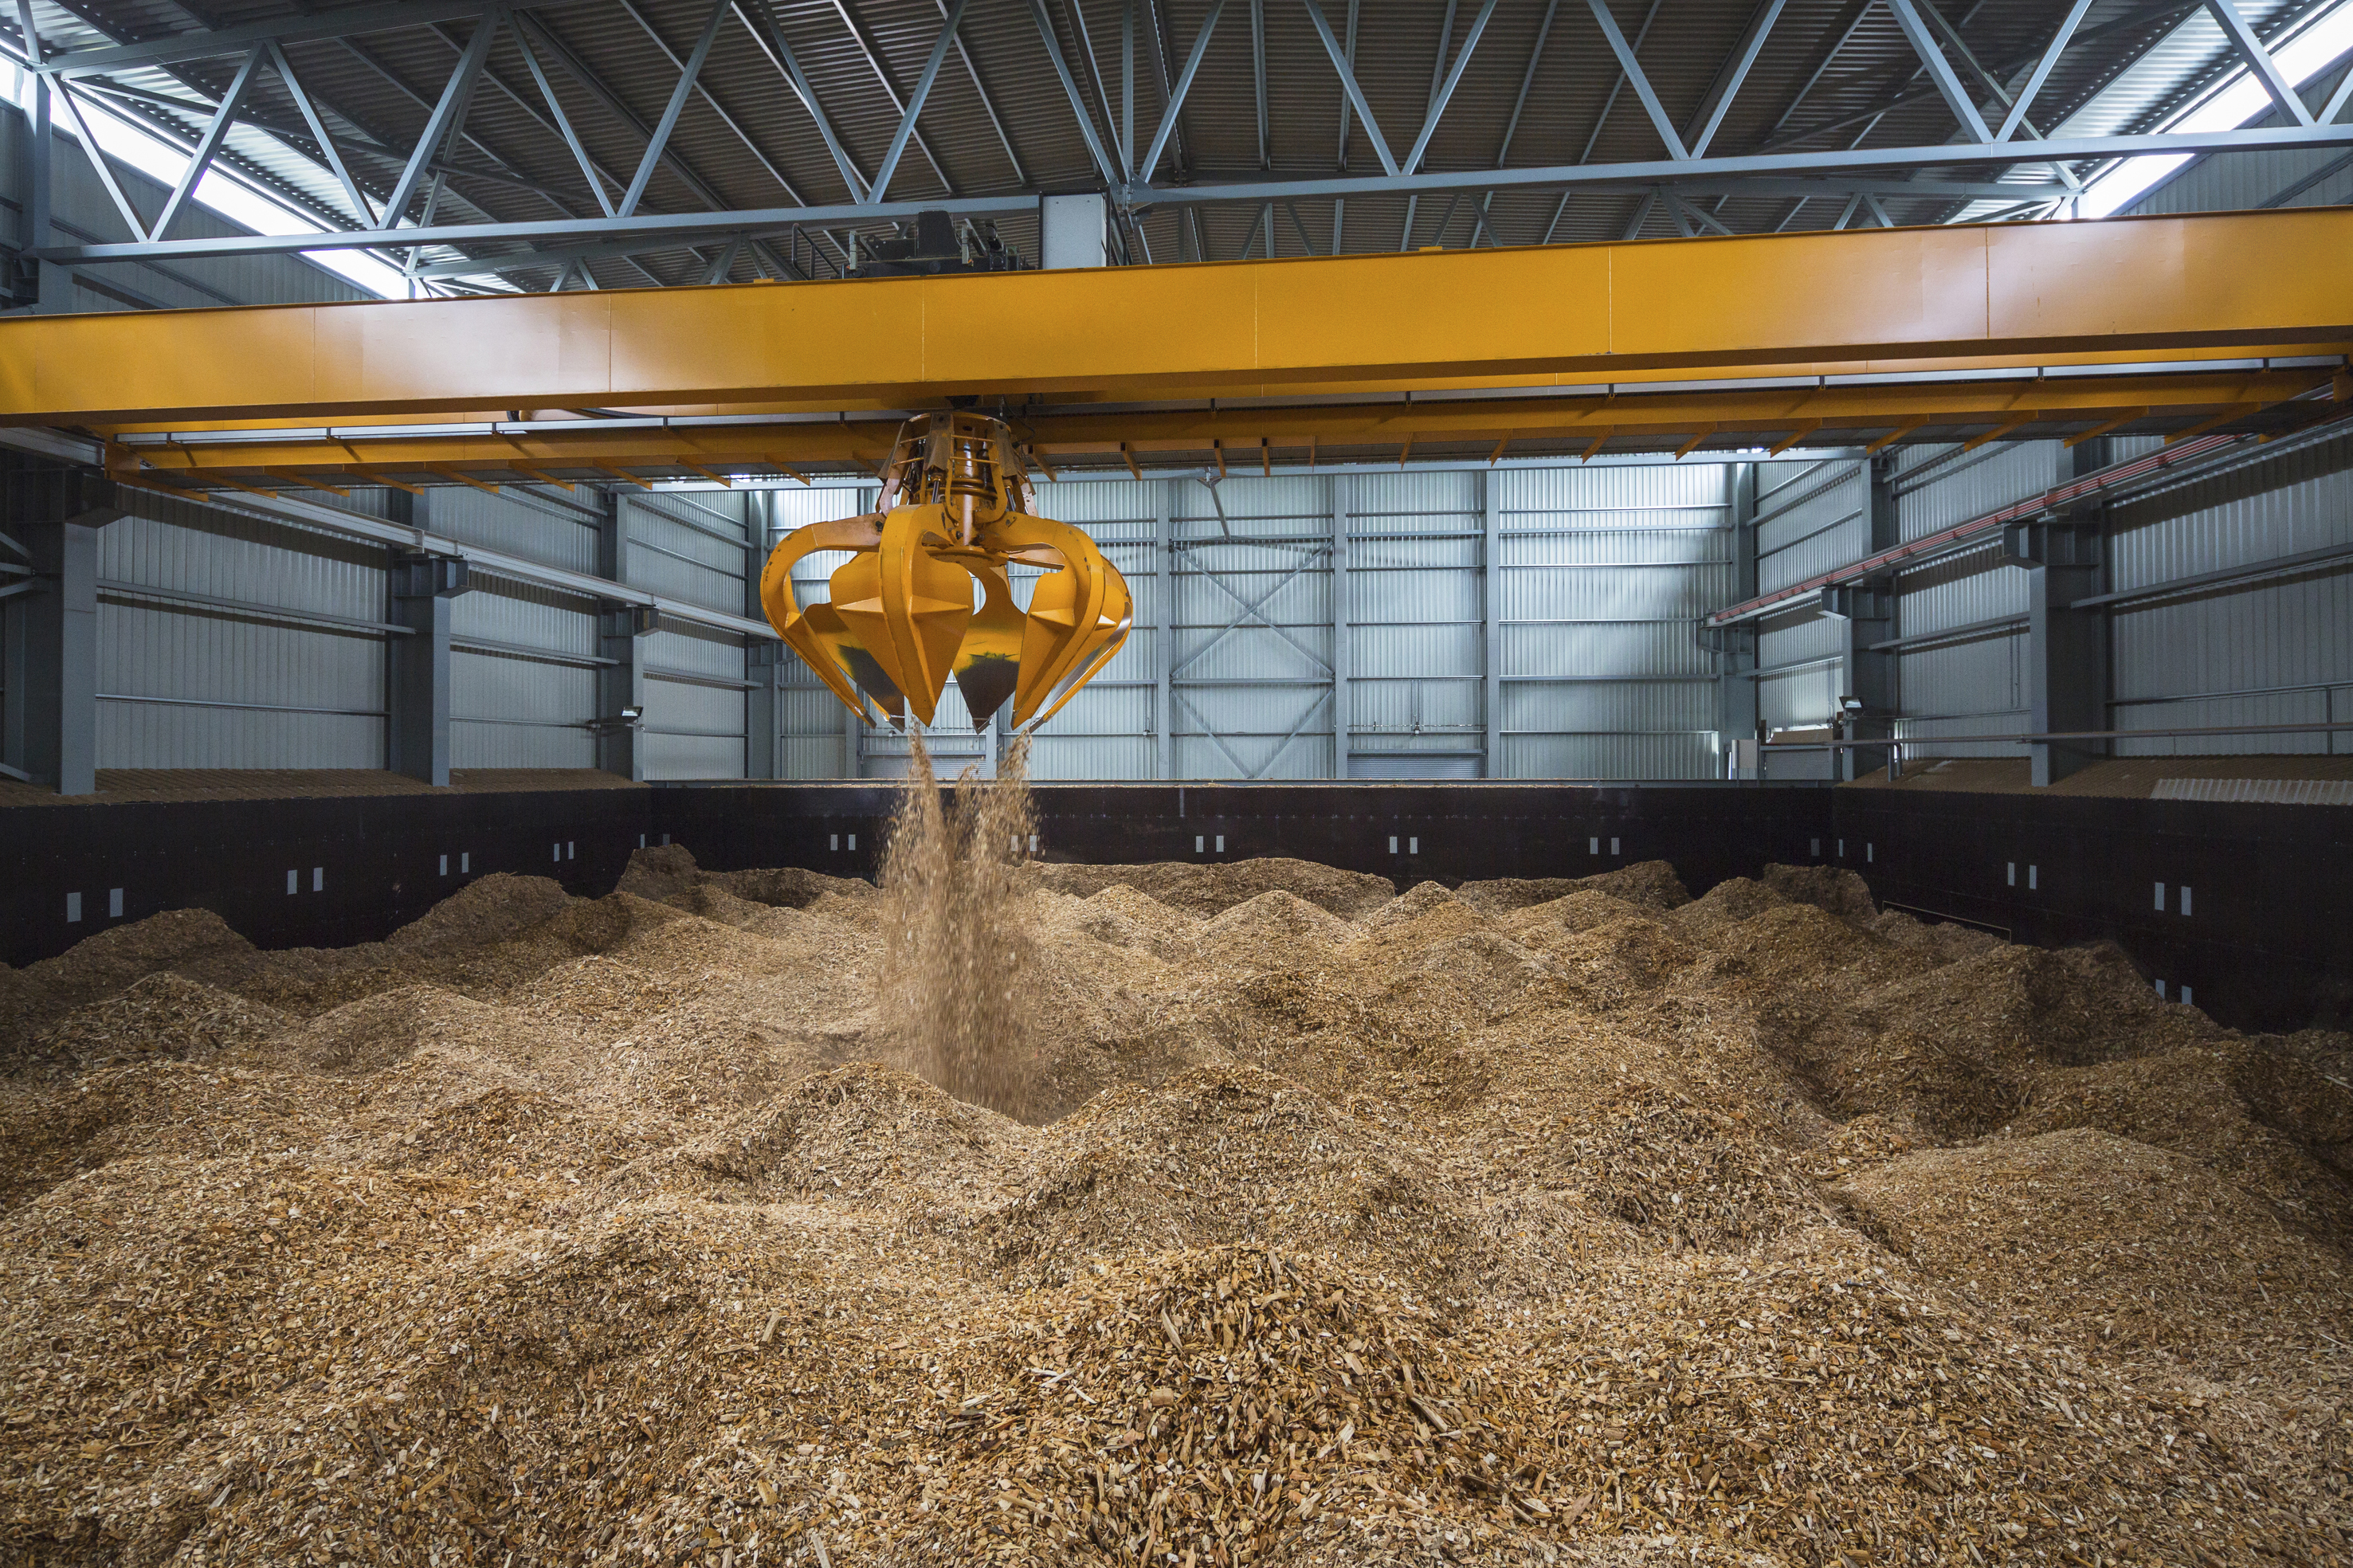 Biomass Wood Chips ~ Biomass wood chips storage global trade review gtr